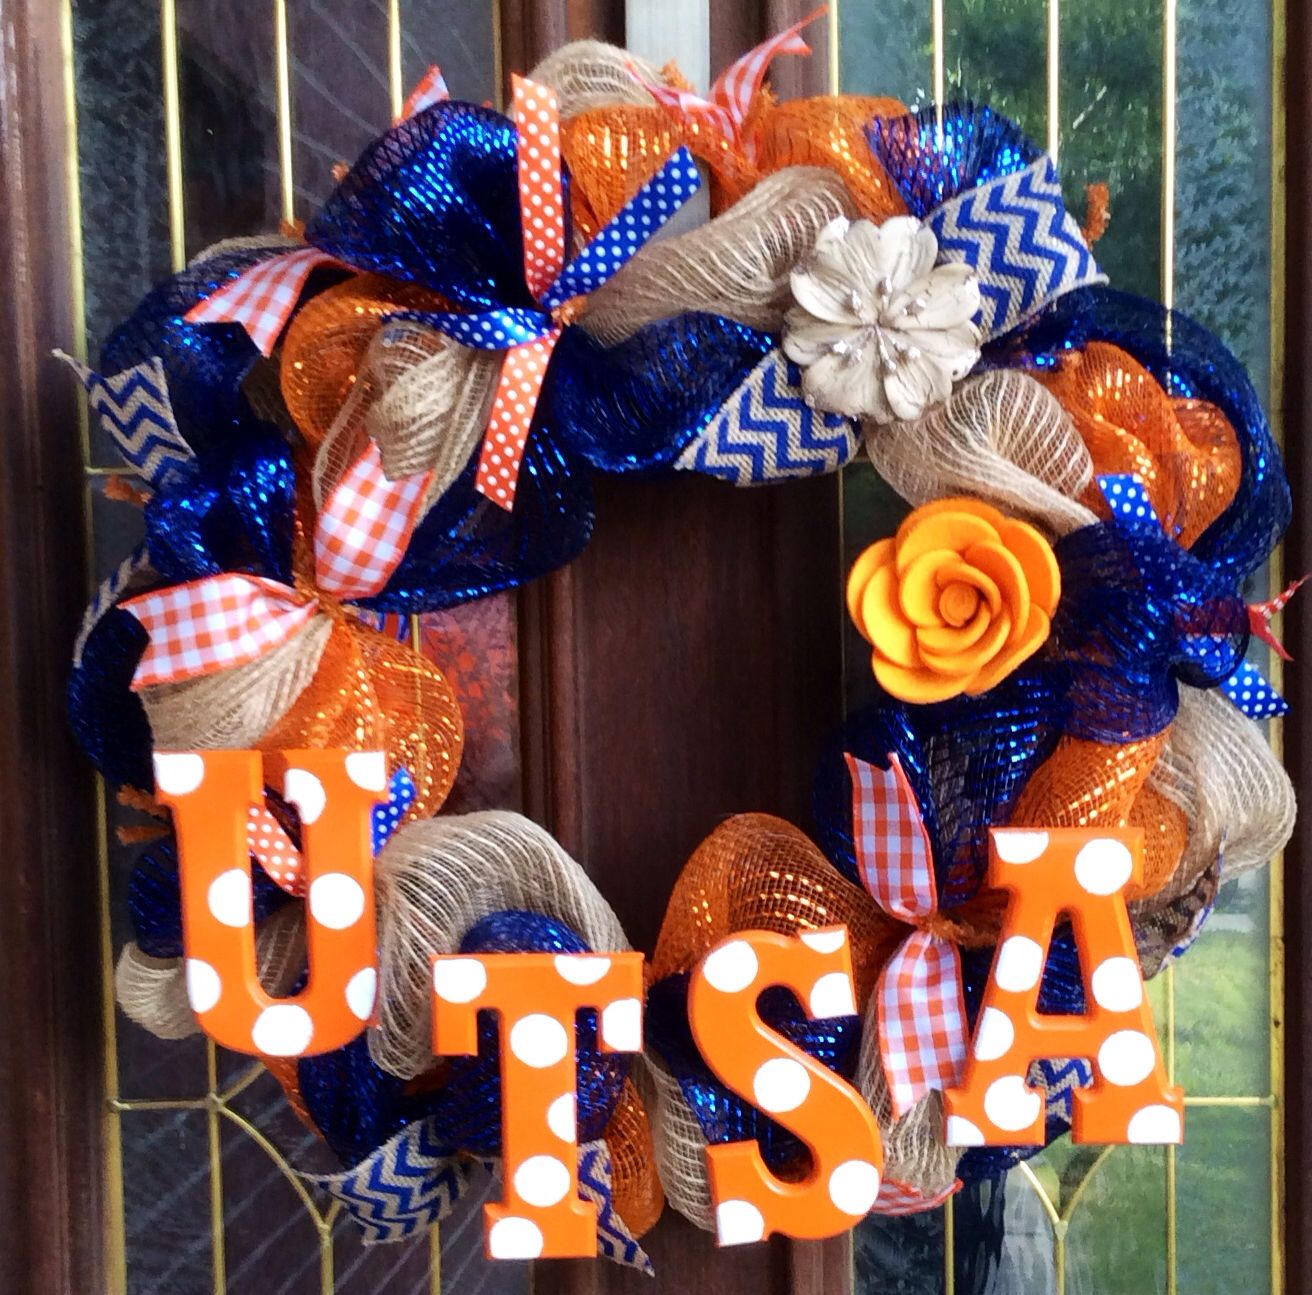 UTSA College Wreath